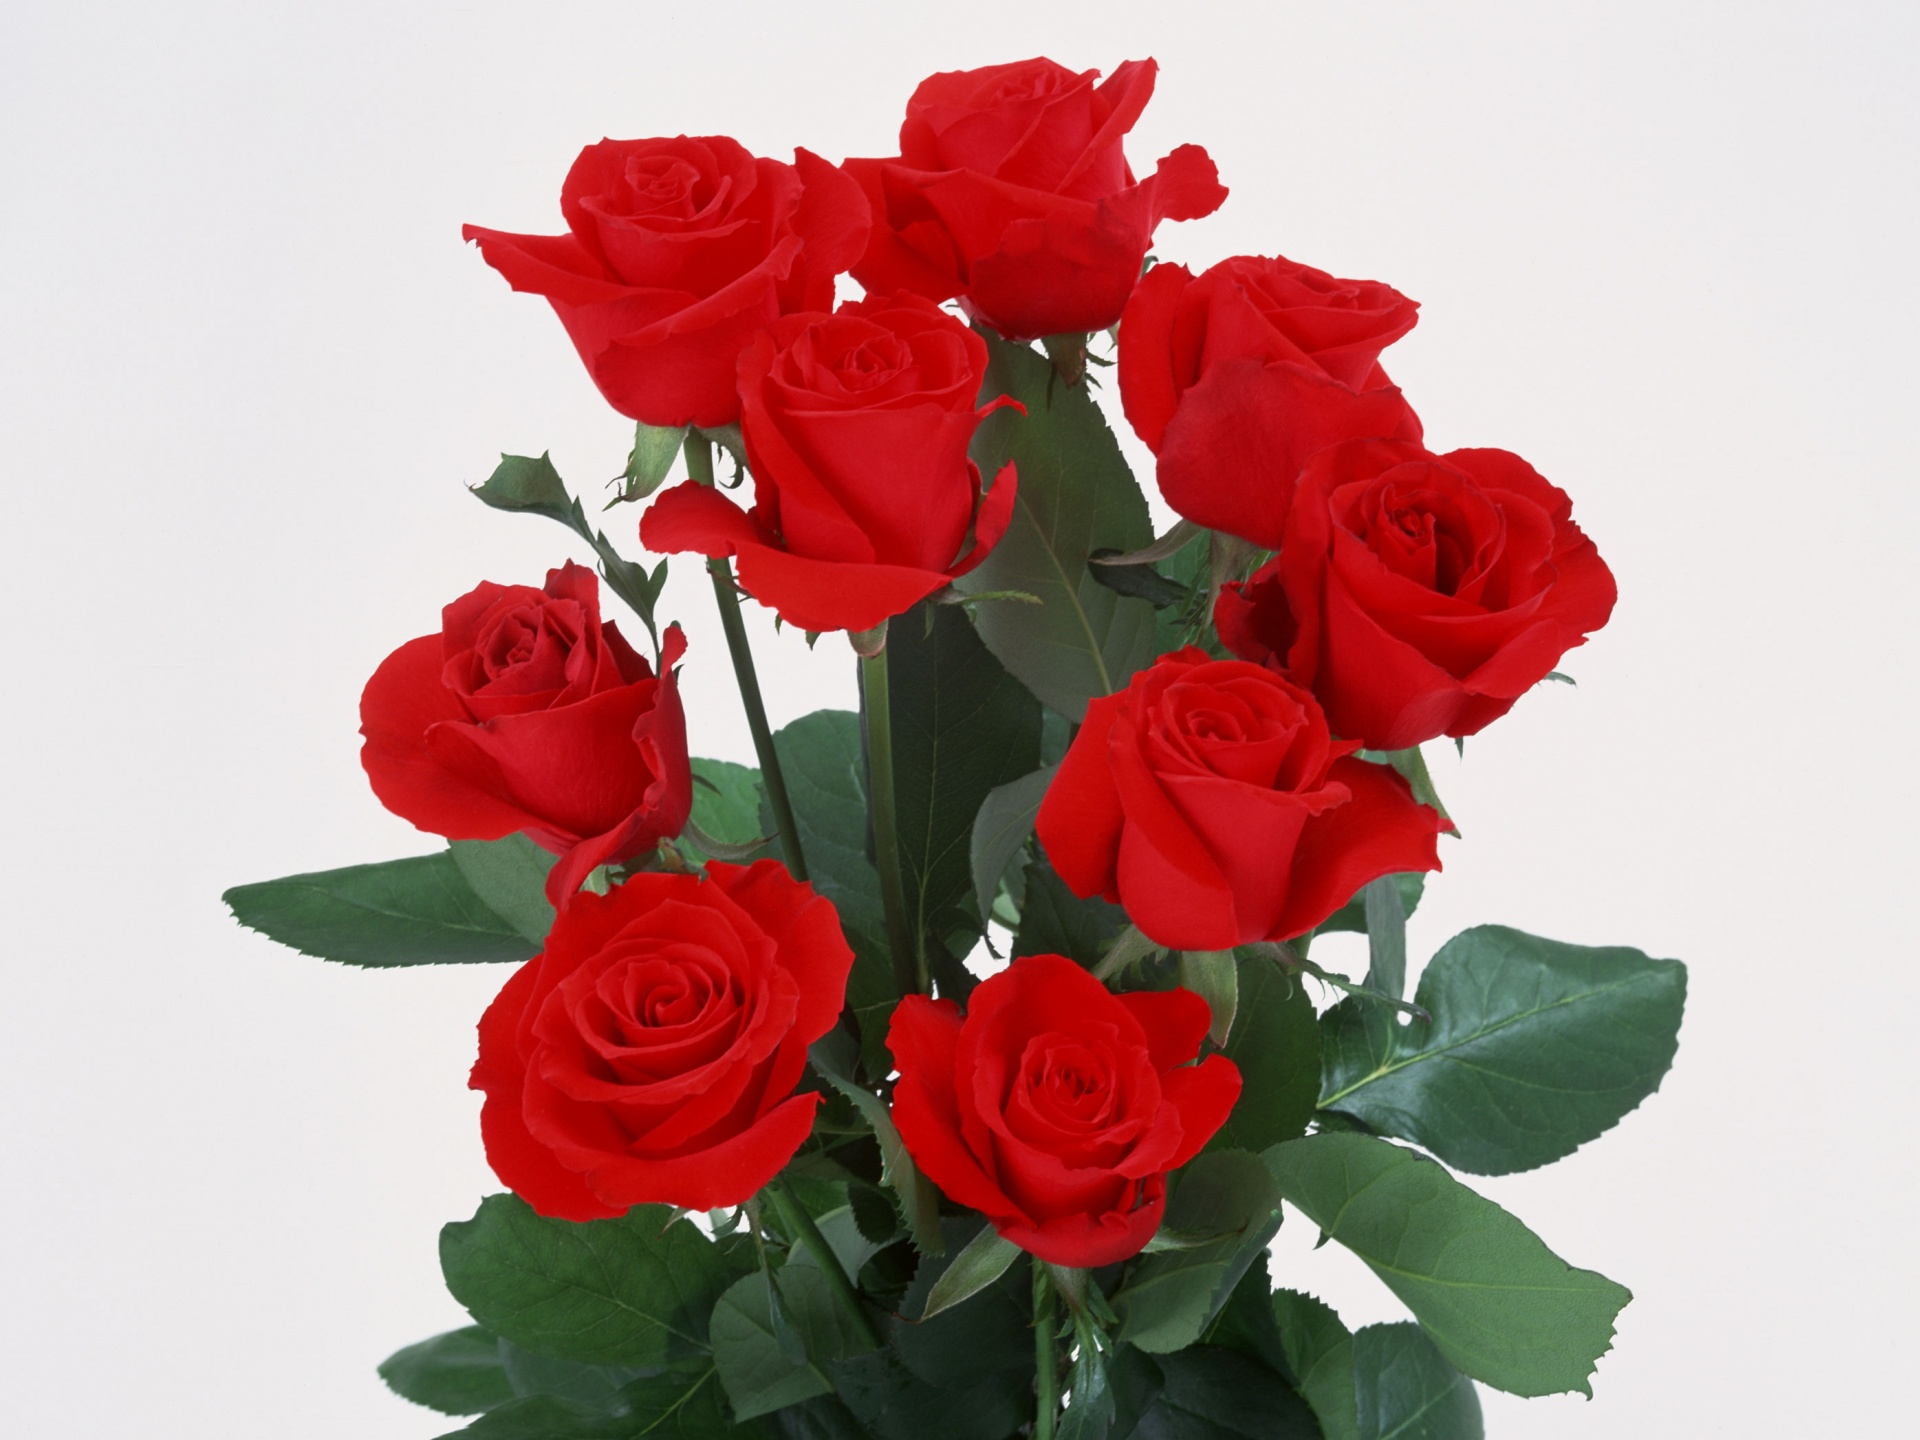 Roses bunch wallpapers roses bunch stock photos - Bunch of roses hd images ...